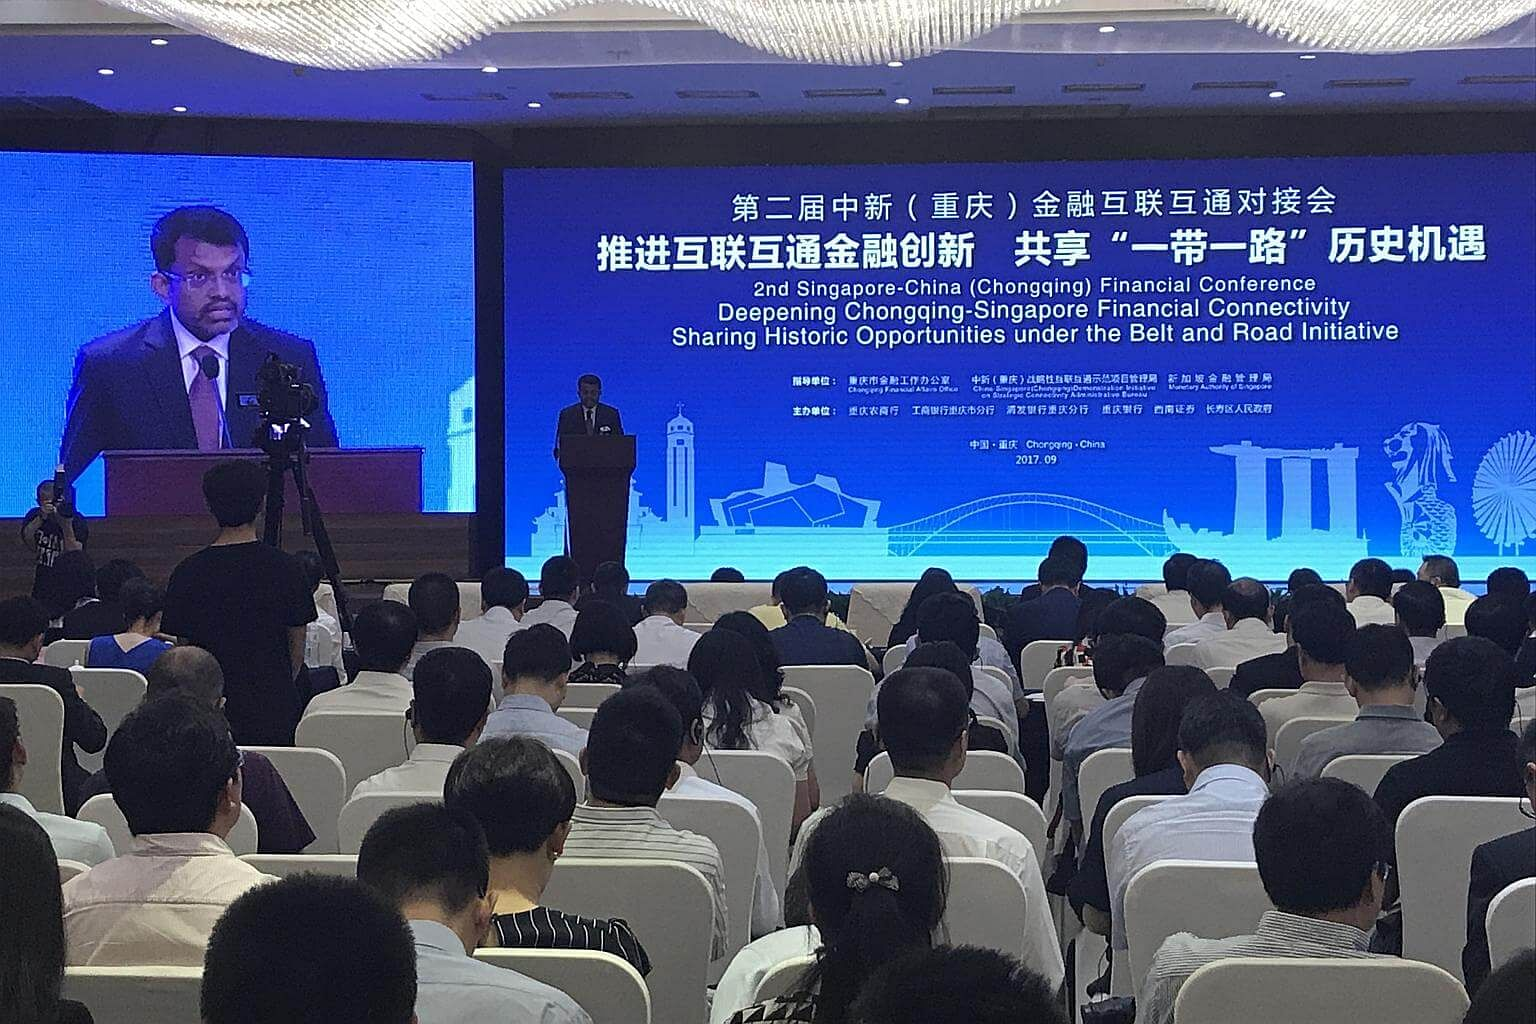 China has allocated Singapore 22 billion for the project One zone, one road 45